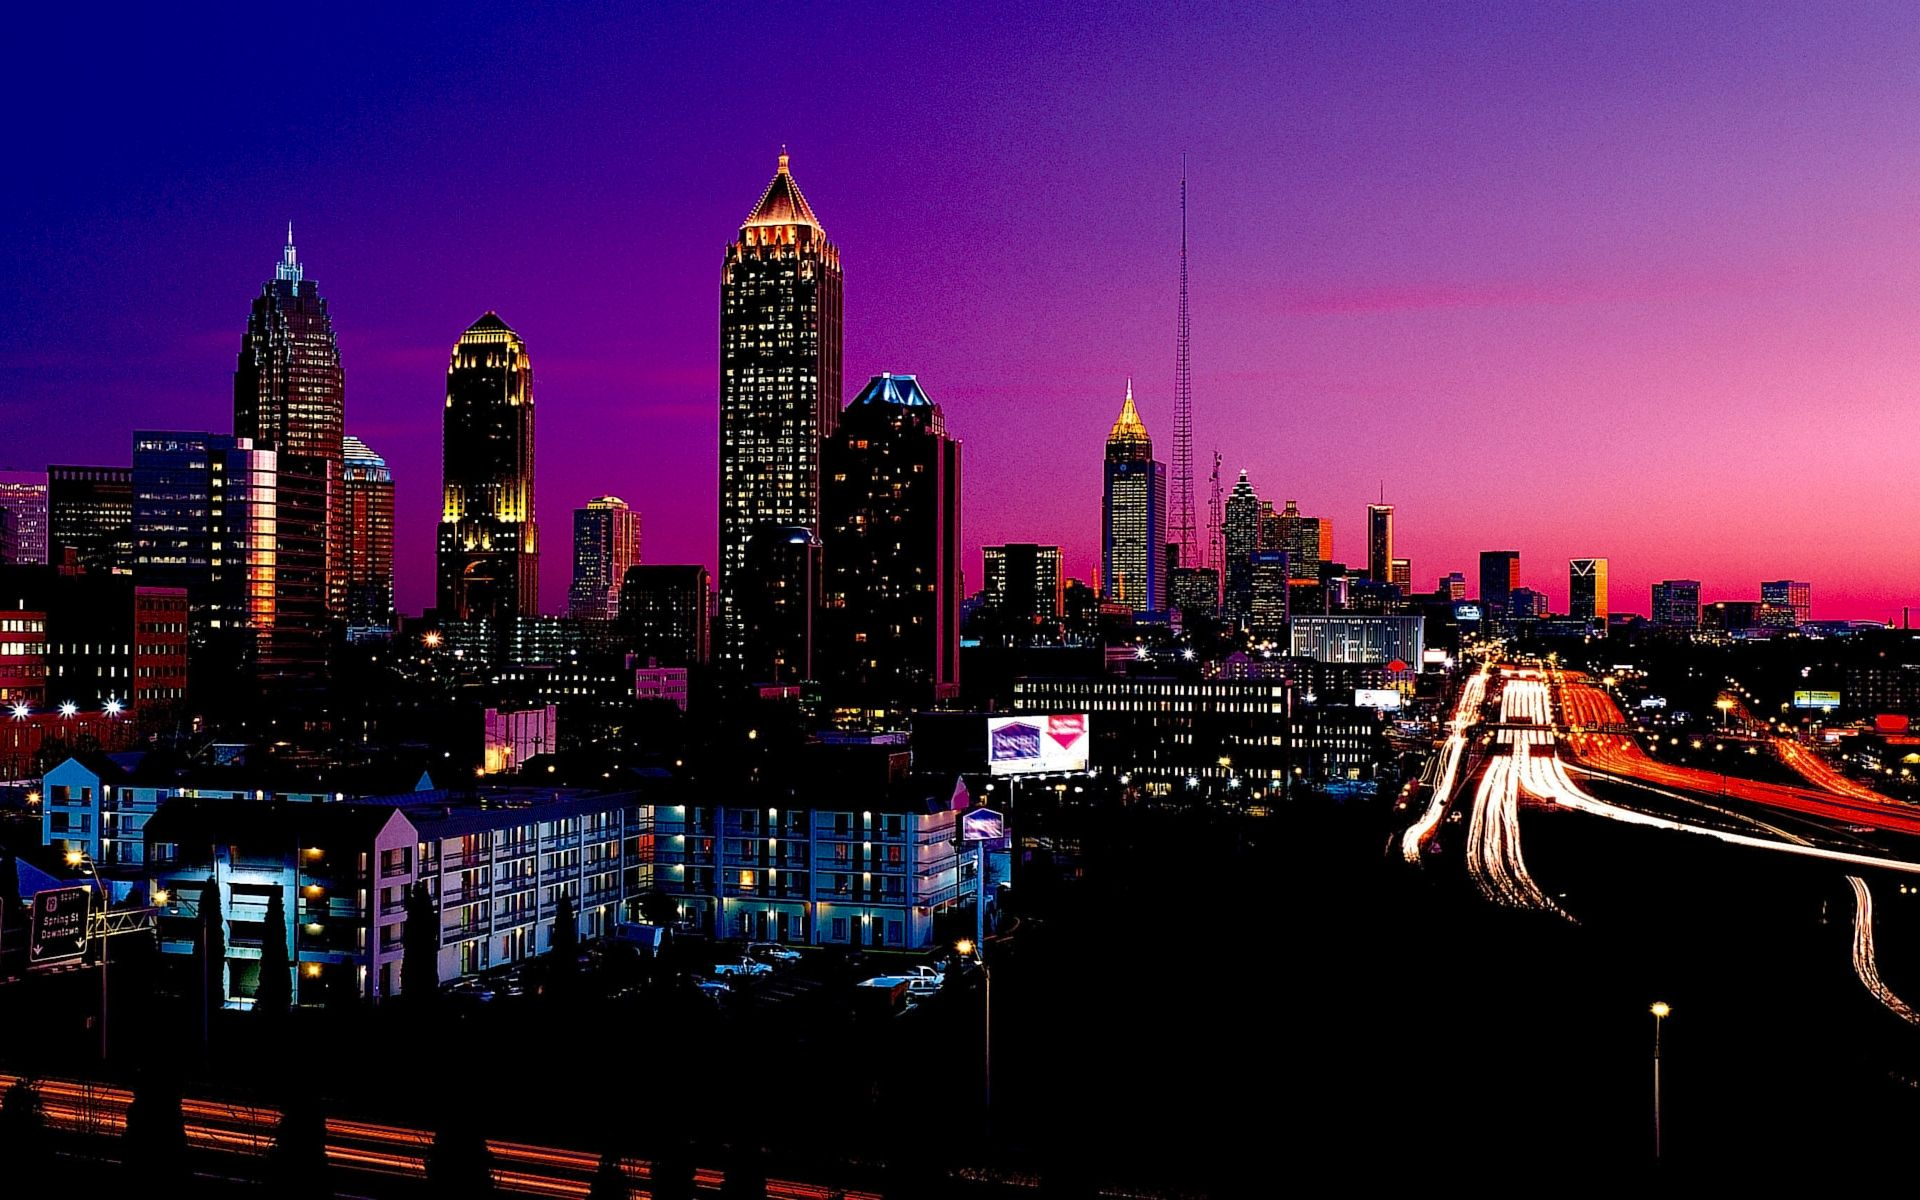 Full HD Wallpapers Night City Lights Wallpapers Pack 3 23 1920x1200